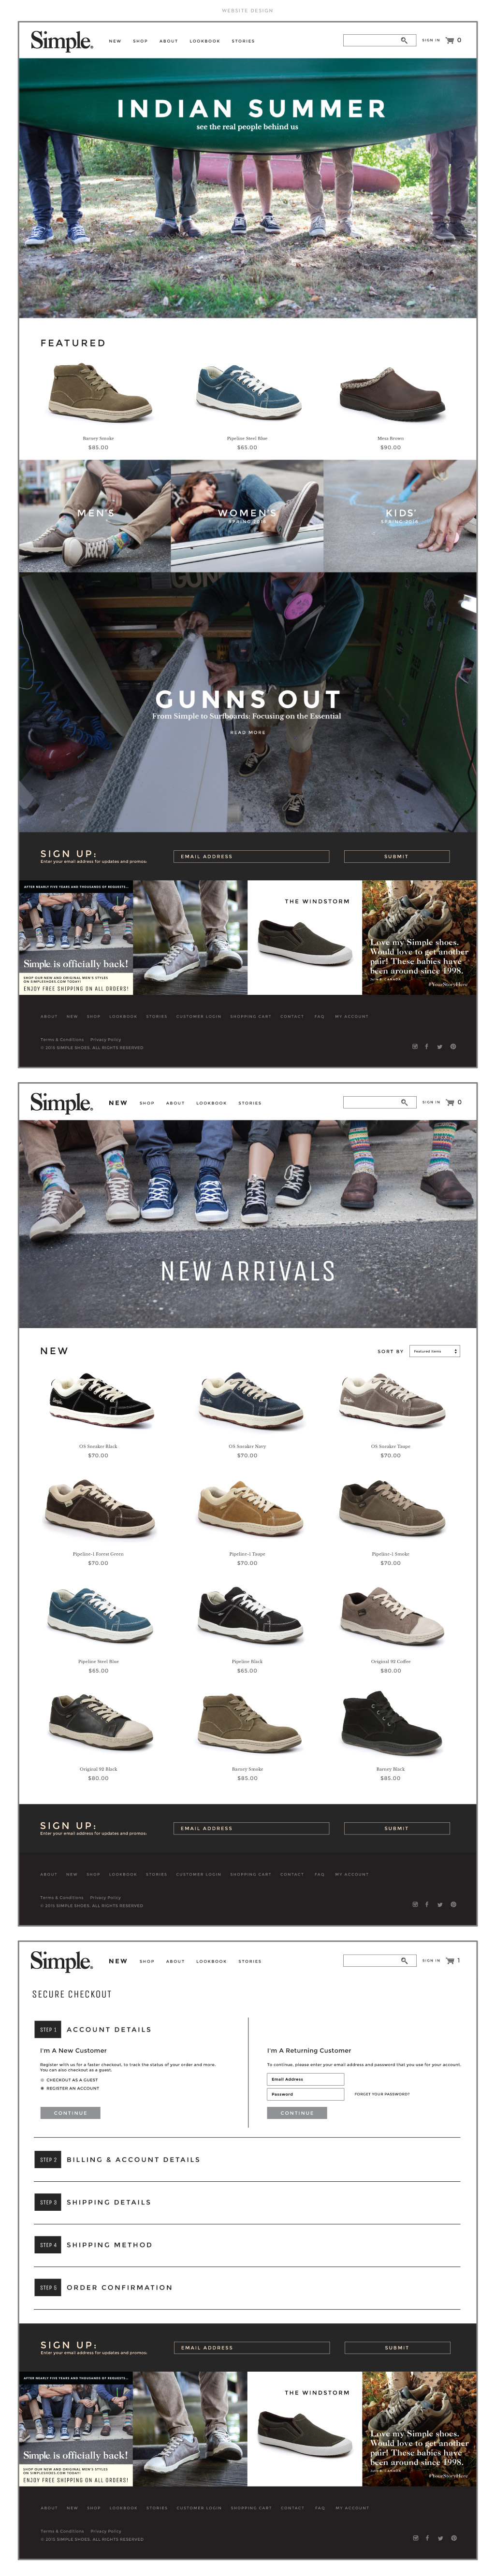 Simple Shoes Web Design by M studio